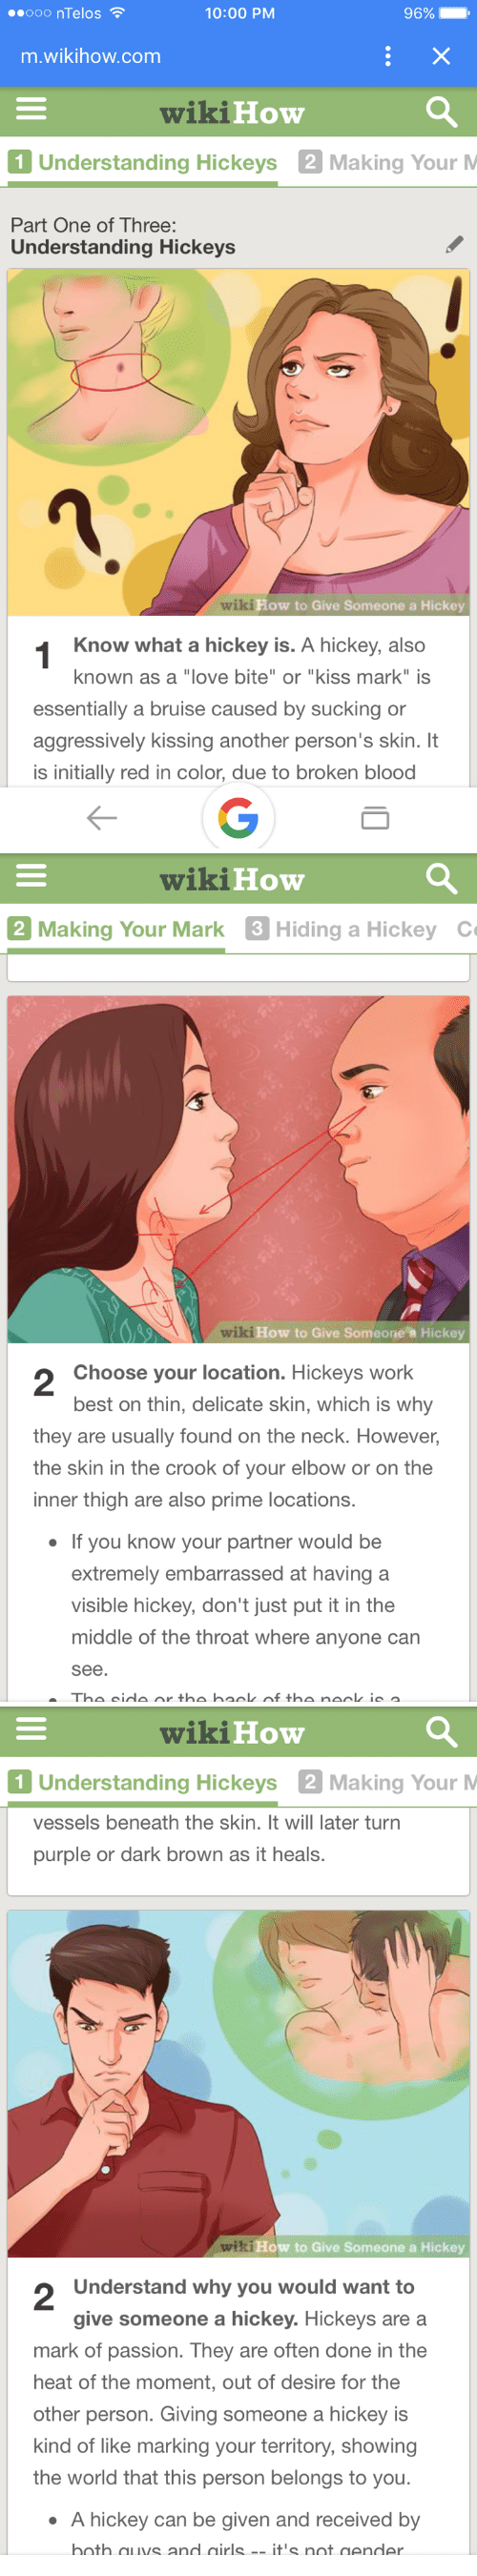 """Love, Work, and Best: ooo nTelos  10:00 PM  96%  m.wikihow.com  wikiHow  1 Understanding Hickeys 2 Making Your M  Part One of Three:  Understanding  Hickeys  How to Give Someone a Hickey  Know what a hickey is. A hickey, also  known as a """"love bite"""" or """"kiss mark"""" is  essentially a bruise caused by sucking or  aggressively kissing another person's skin. It  is initially red in color, due to broken blood   wikiHow  Making Your Mark 3 Hiding a Hickey  เช่ :How to Give Someonea Hickey  2  Choose your location. Hickeys work  best on thin, delicate skin, which is why  they are usually found on the neck. However,  the skin in the crook of your elbow or on the  inner thigh are also prime locations  If you know your partner would be  extremely embarrassed at having a  visible hickey, don't just put it in the  middle of the throat where anyone can  see.   wikiHow  1 Understanding Hickeys 2 Making Your M  vessels beneath the skin. It will later turn  purple or dark brown as it heals.  ow to Give Someone a Hickey  2  Understand why you would want to  give someone a hickey. Hickeys are a  mark of passion. They are often done in the  heat of the moment, out of desire for the  other person. Giving someone a hickey is  kind of like marking your territory, showing  the world that this person belongs to you.  A hickey can be given and received by  hath quys and airls-it's not gendler"""